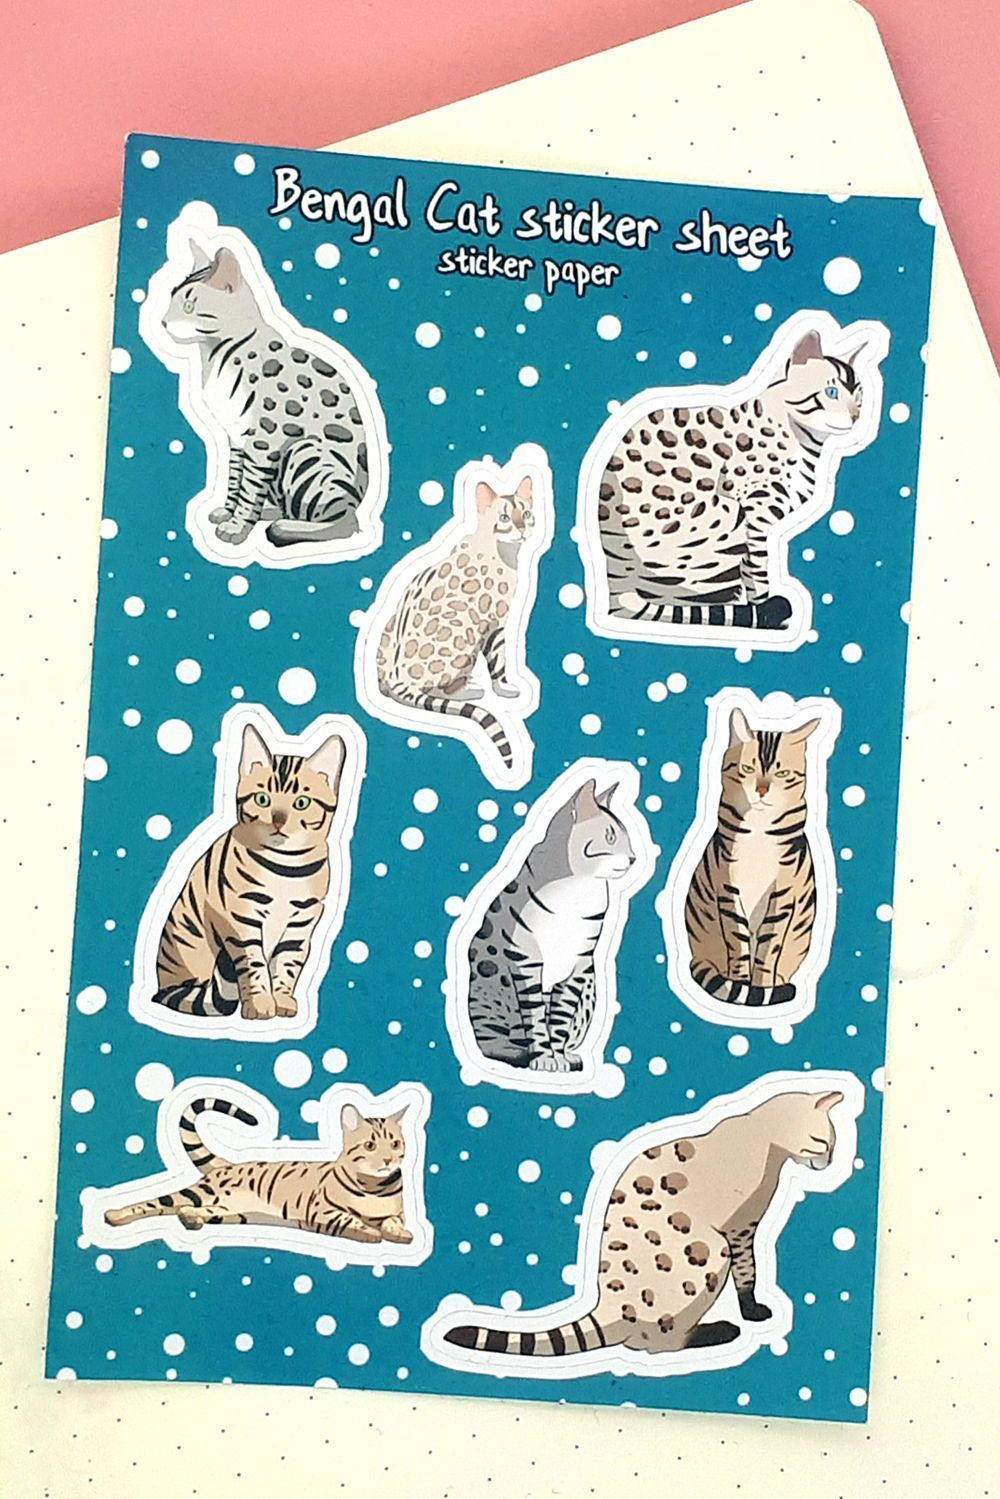 8 charming bengal cat vinyl stickers for your bullet journal | Etsy